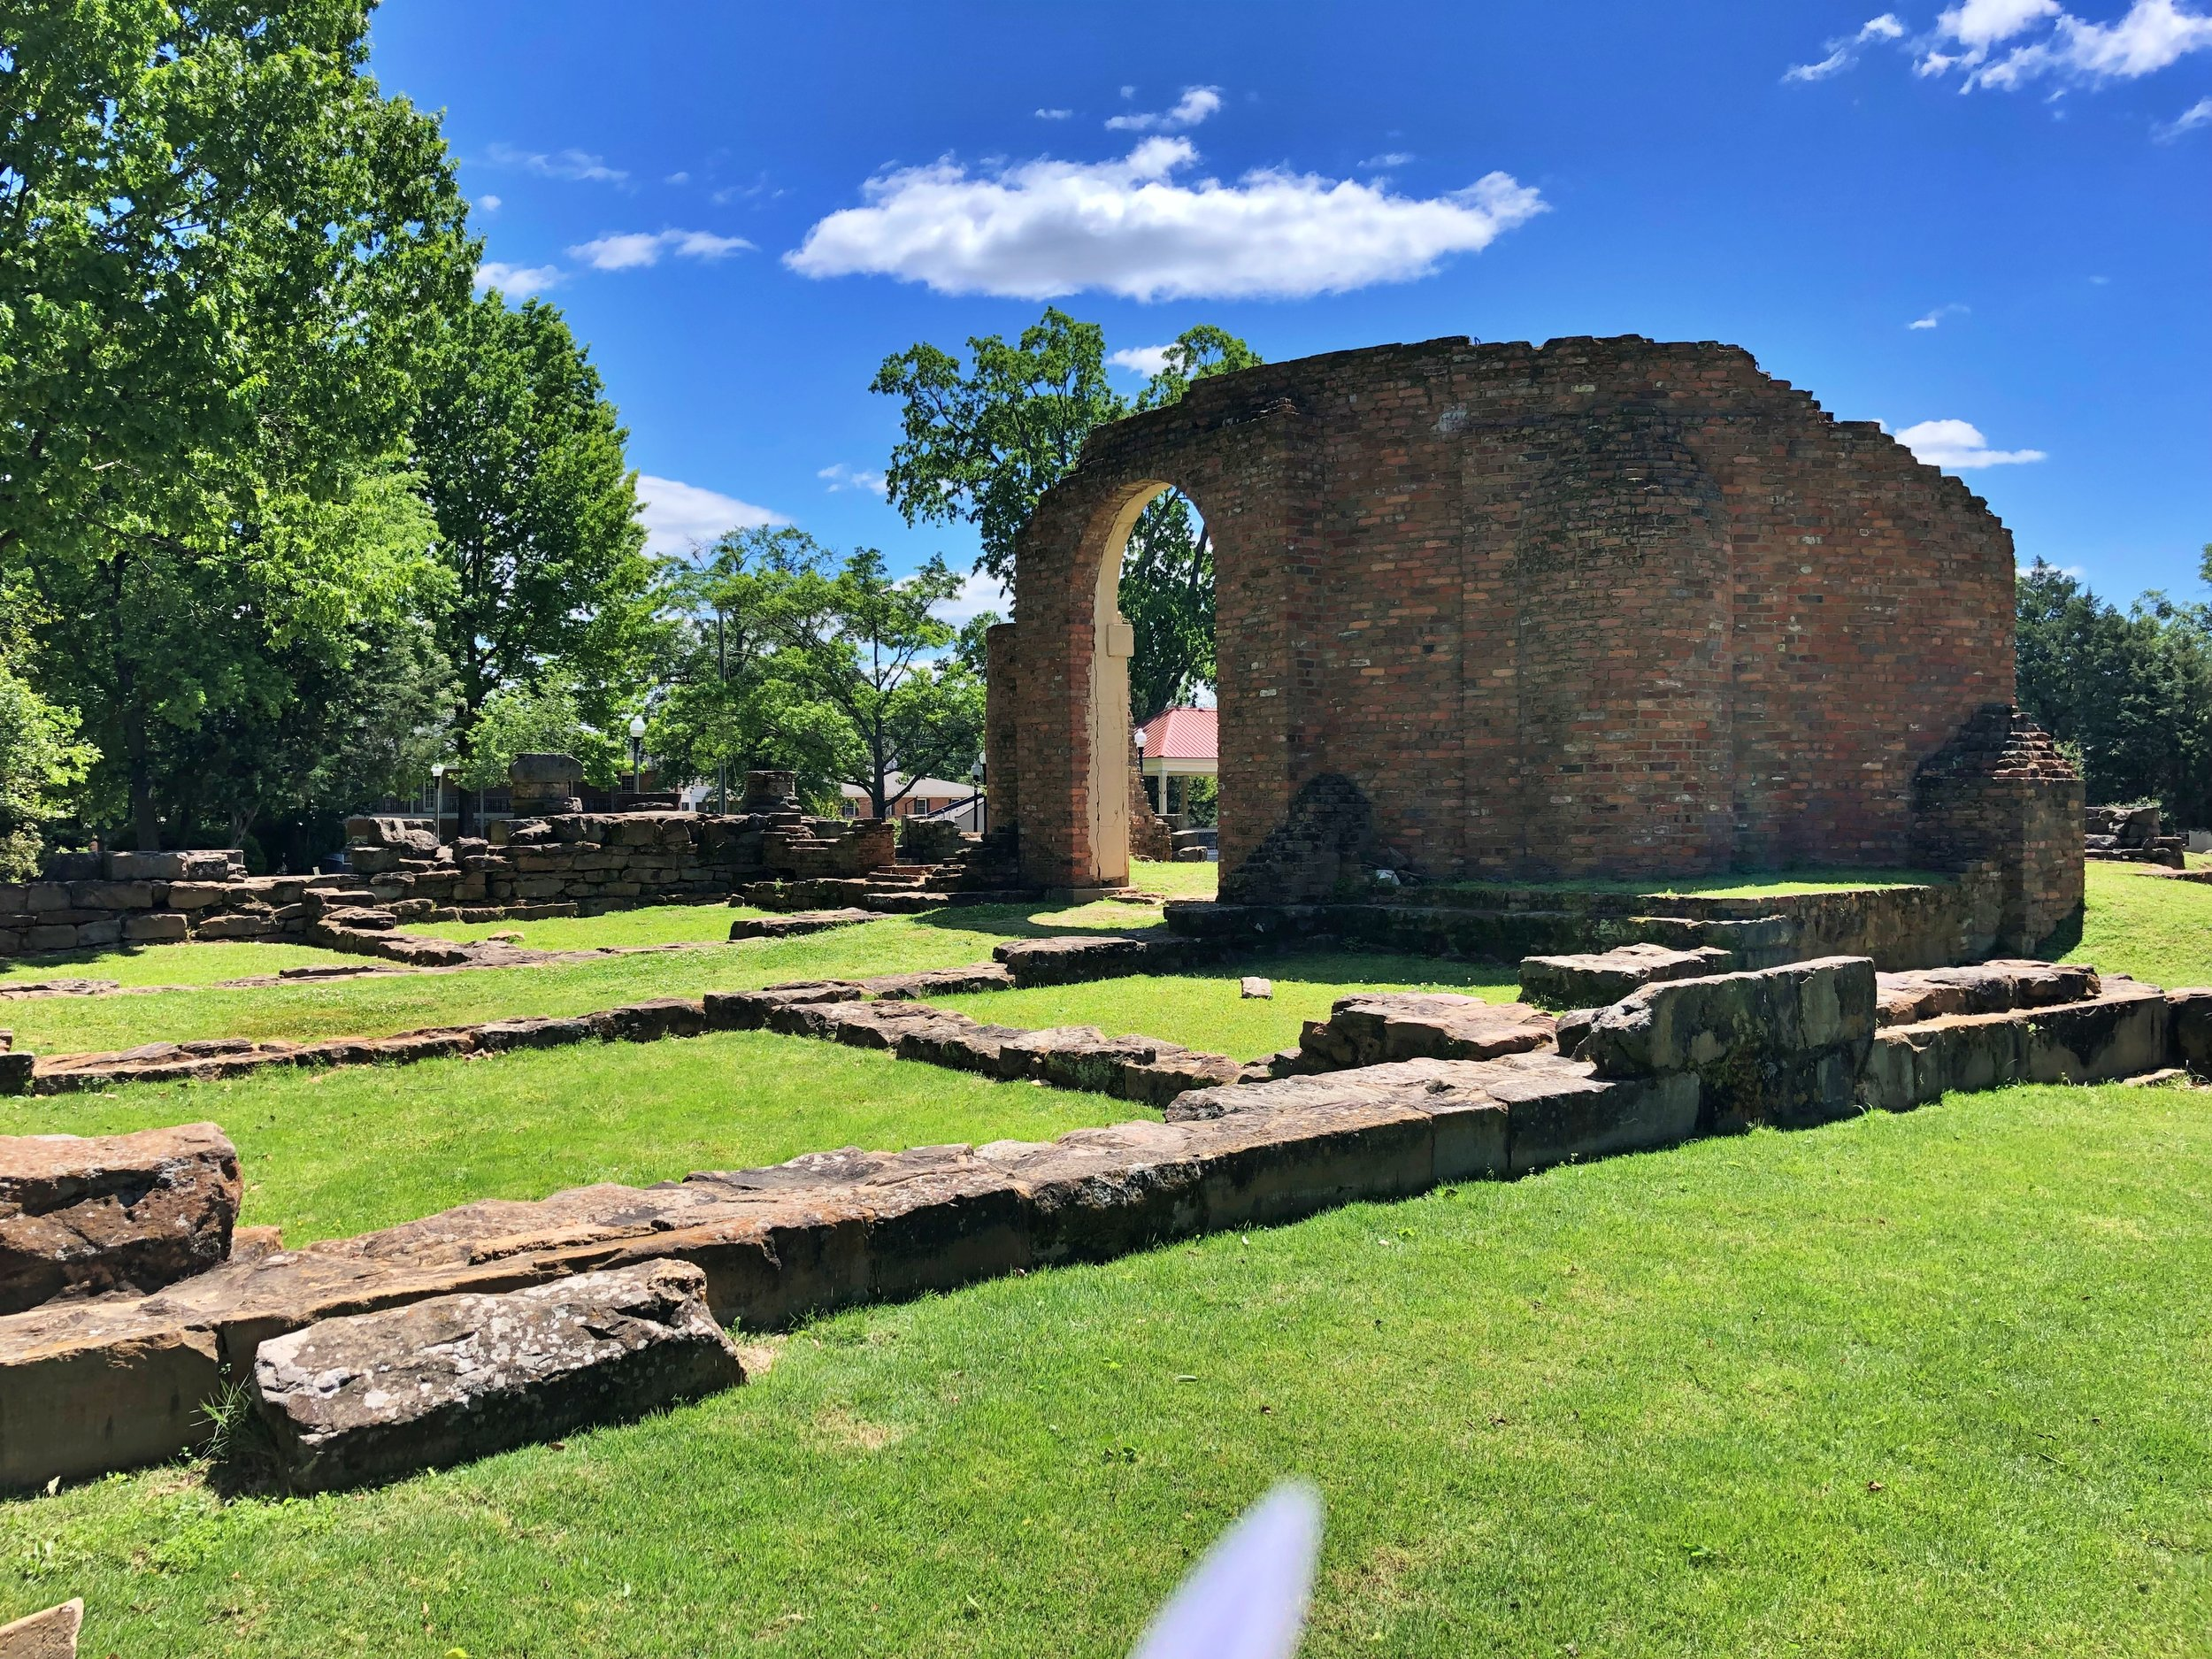 Ruins of the old state capitol built in 1826 … Tuscaloosa, Alabama … Photo by Caroline Pugh